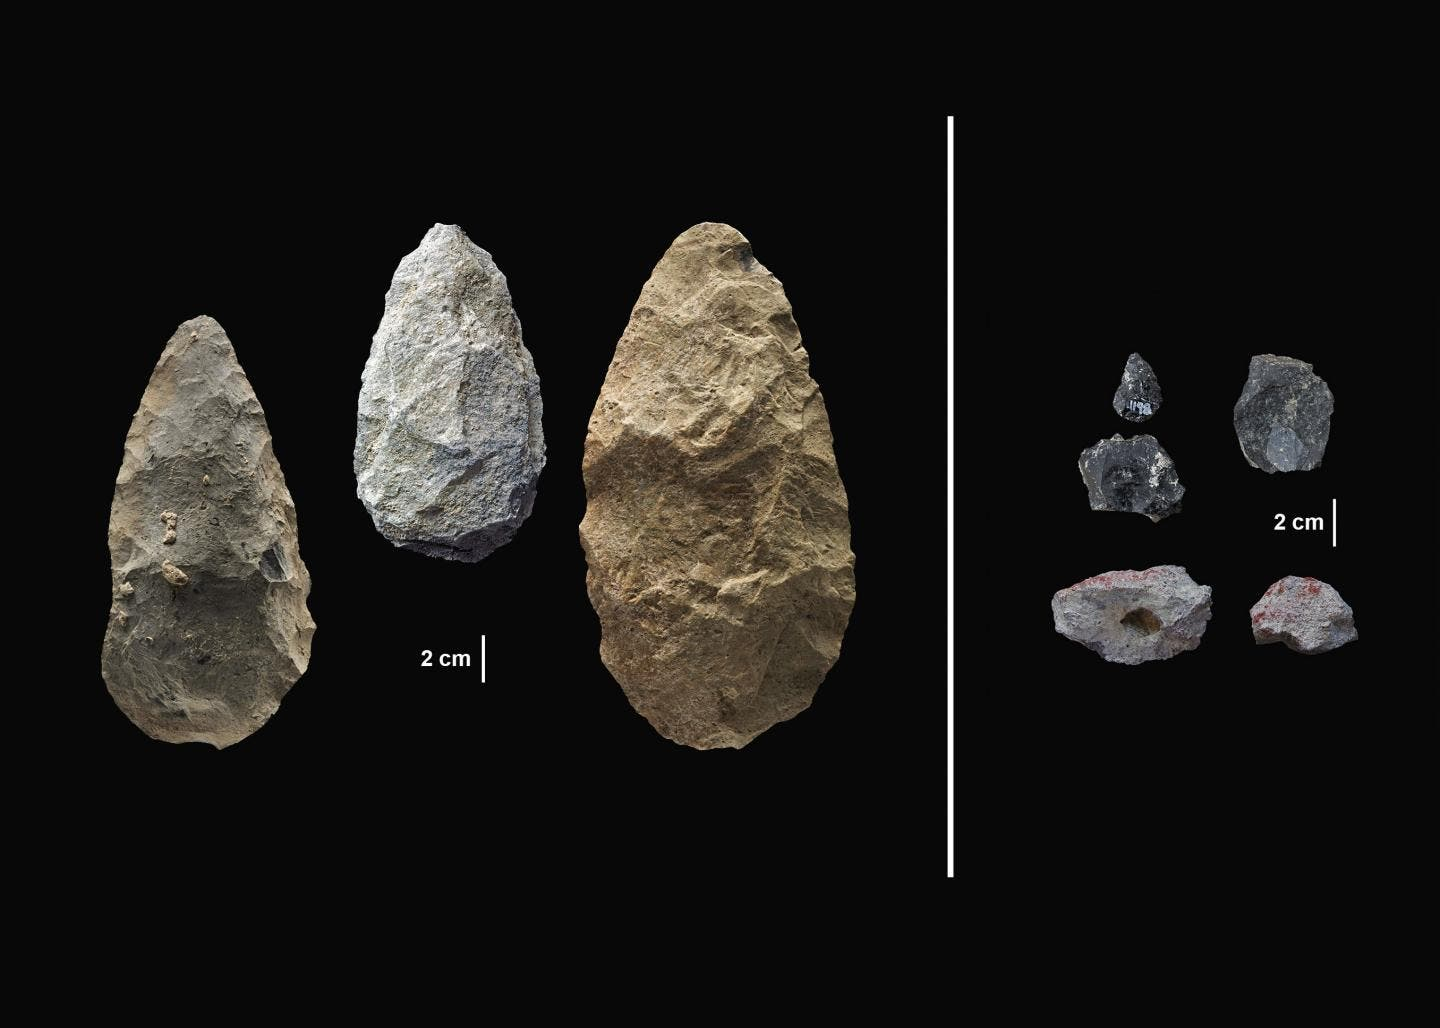 Modern humans may have evolved far earlier than thought, new research suggests